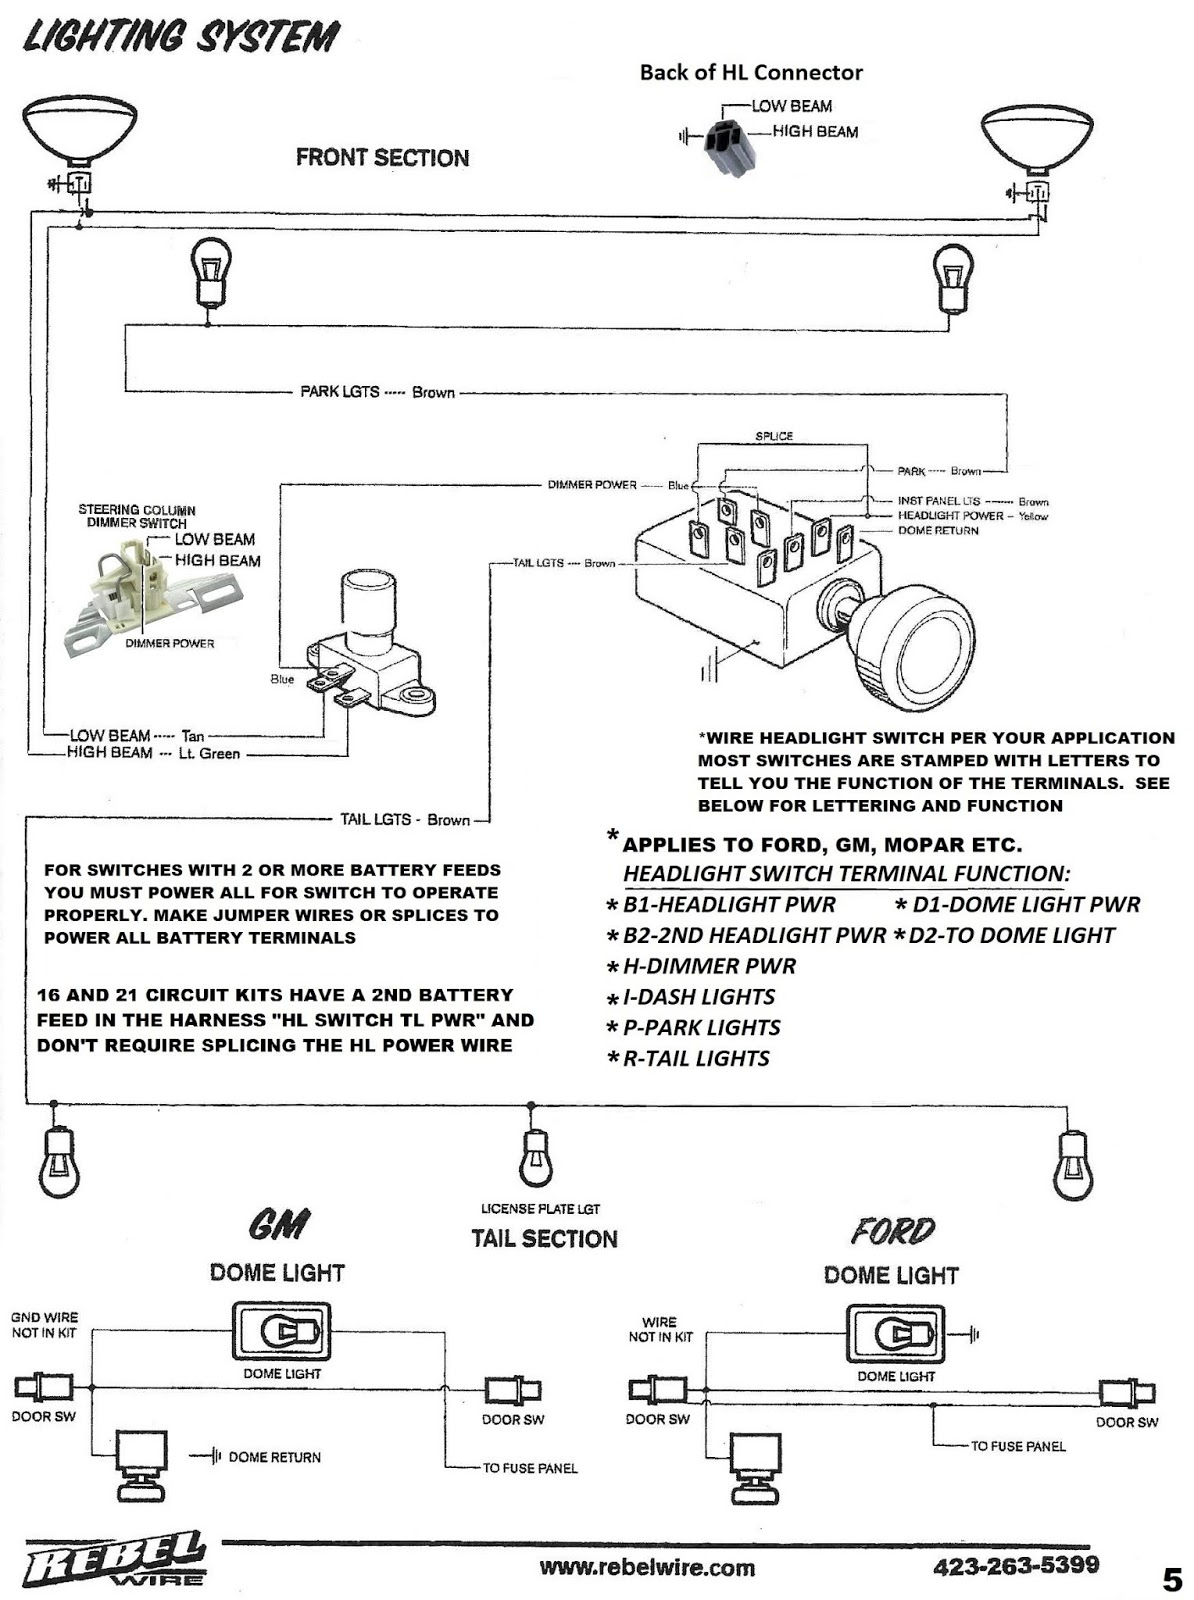 small resolution of rebel wiring for 1953 ford wiring diagram sheet mix rebel wiring for 1953 ford wiring diagram